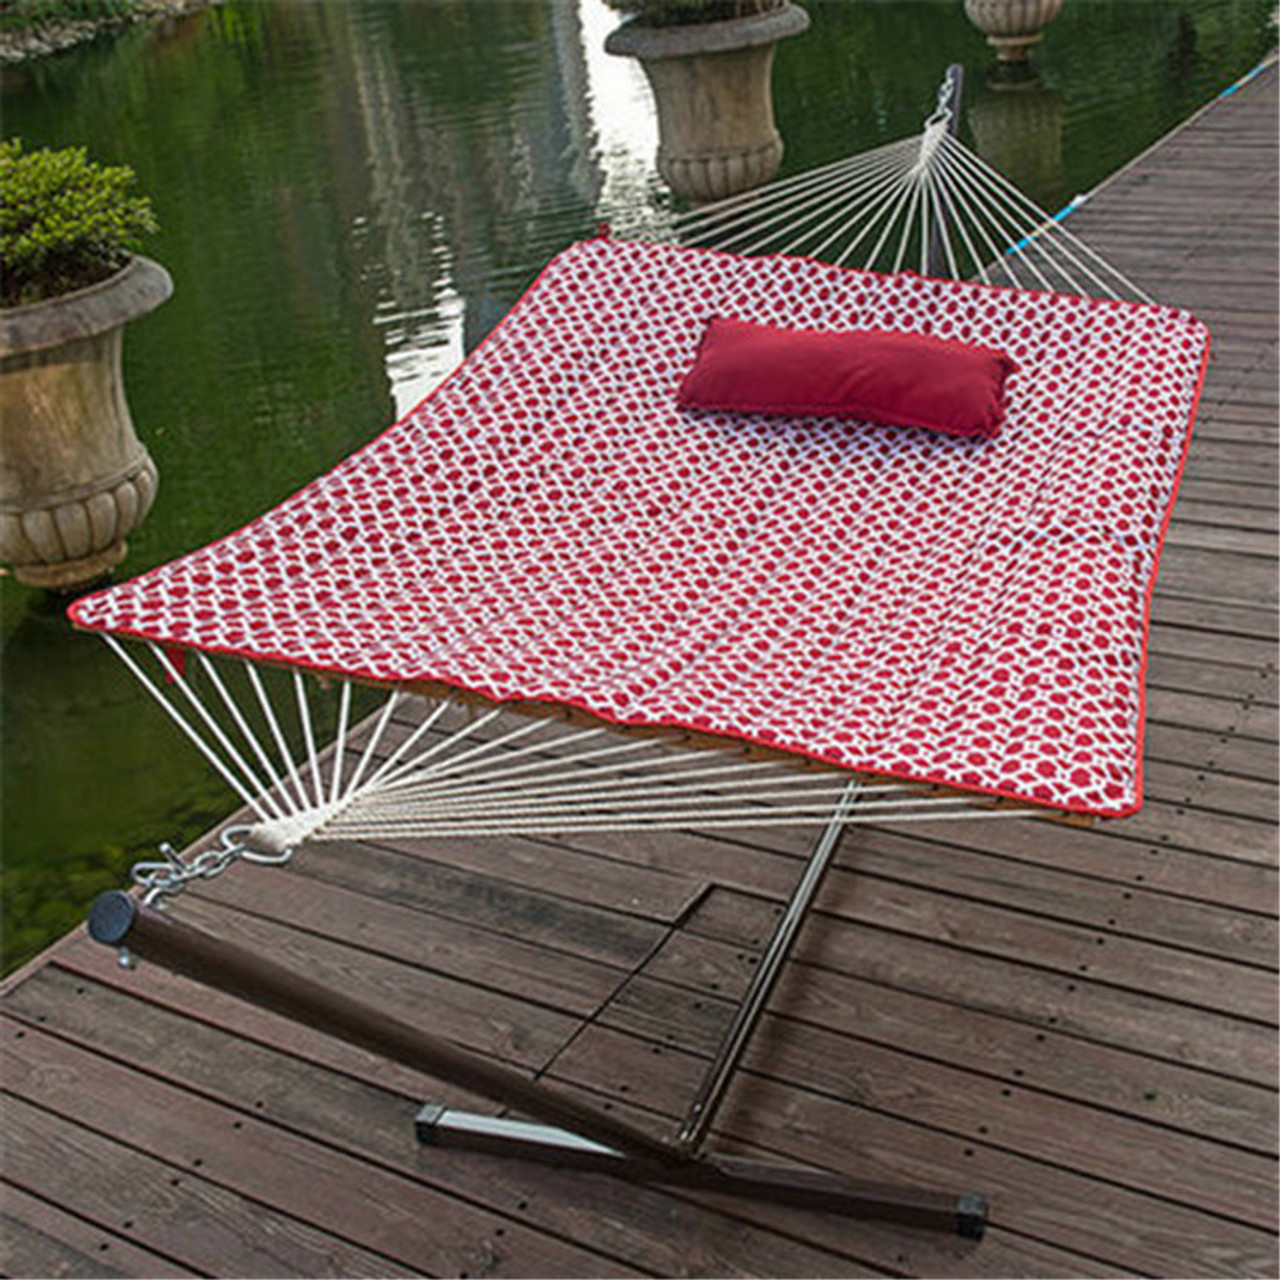 Medium image of lazy daze hammocks 12 feet steel hammock stand with cotton rope hammock  boquilted polyester